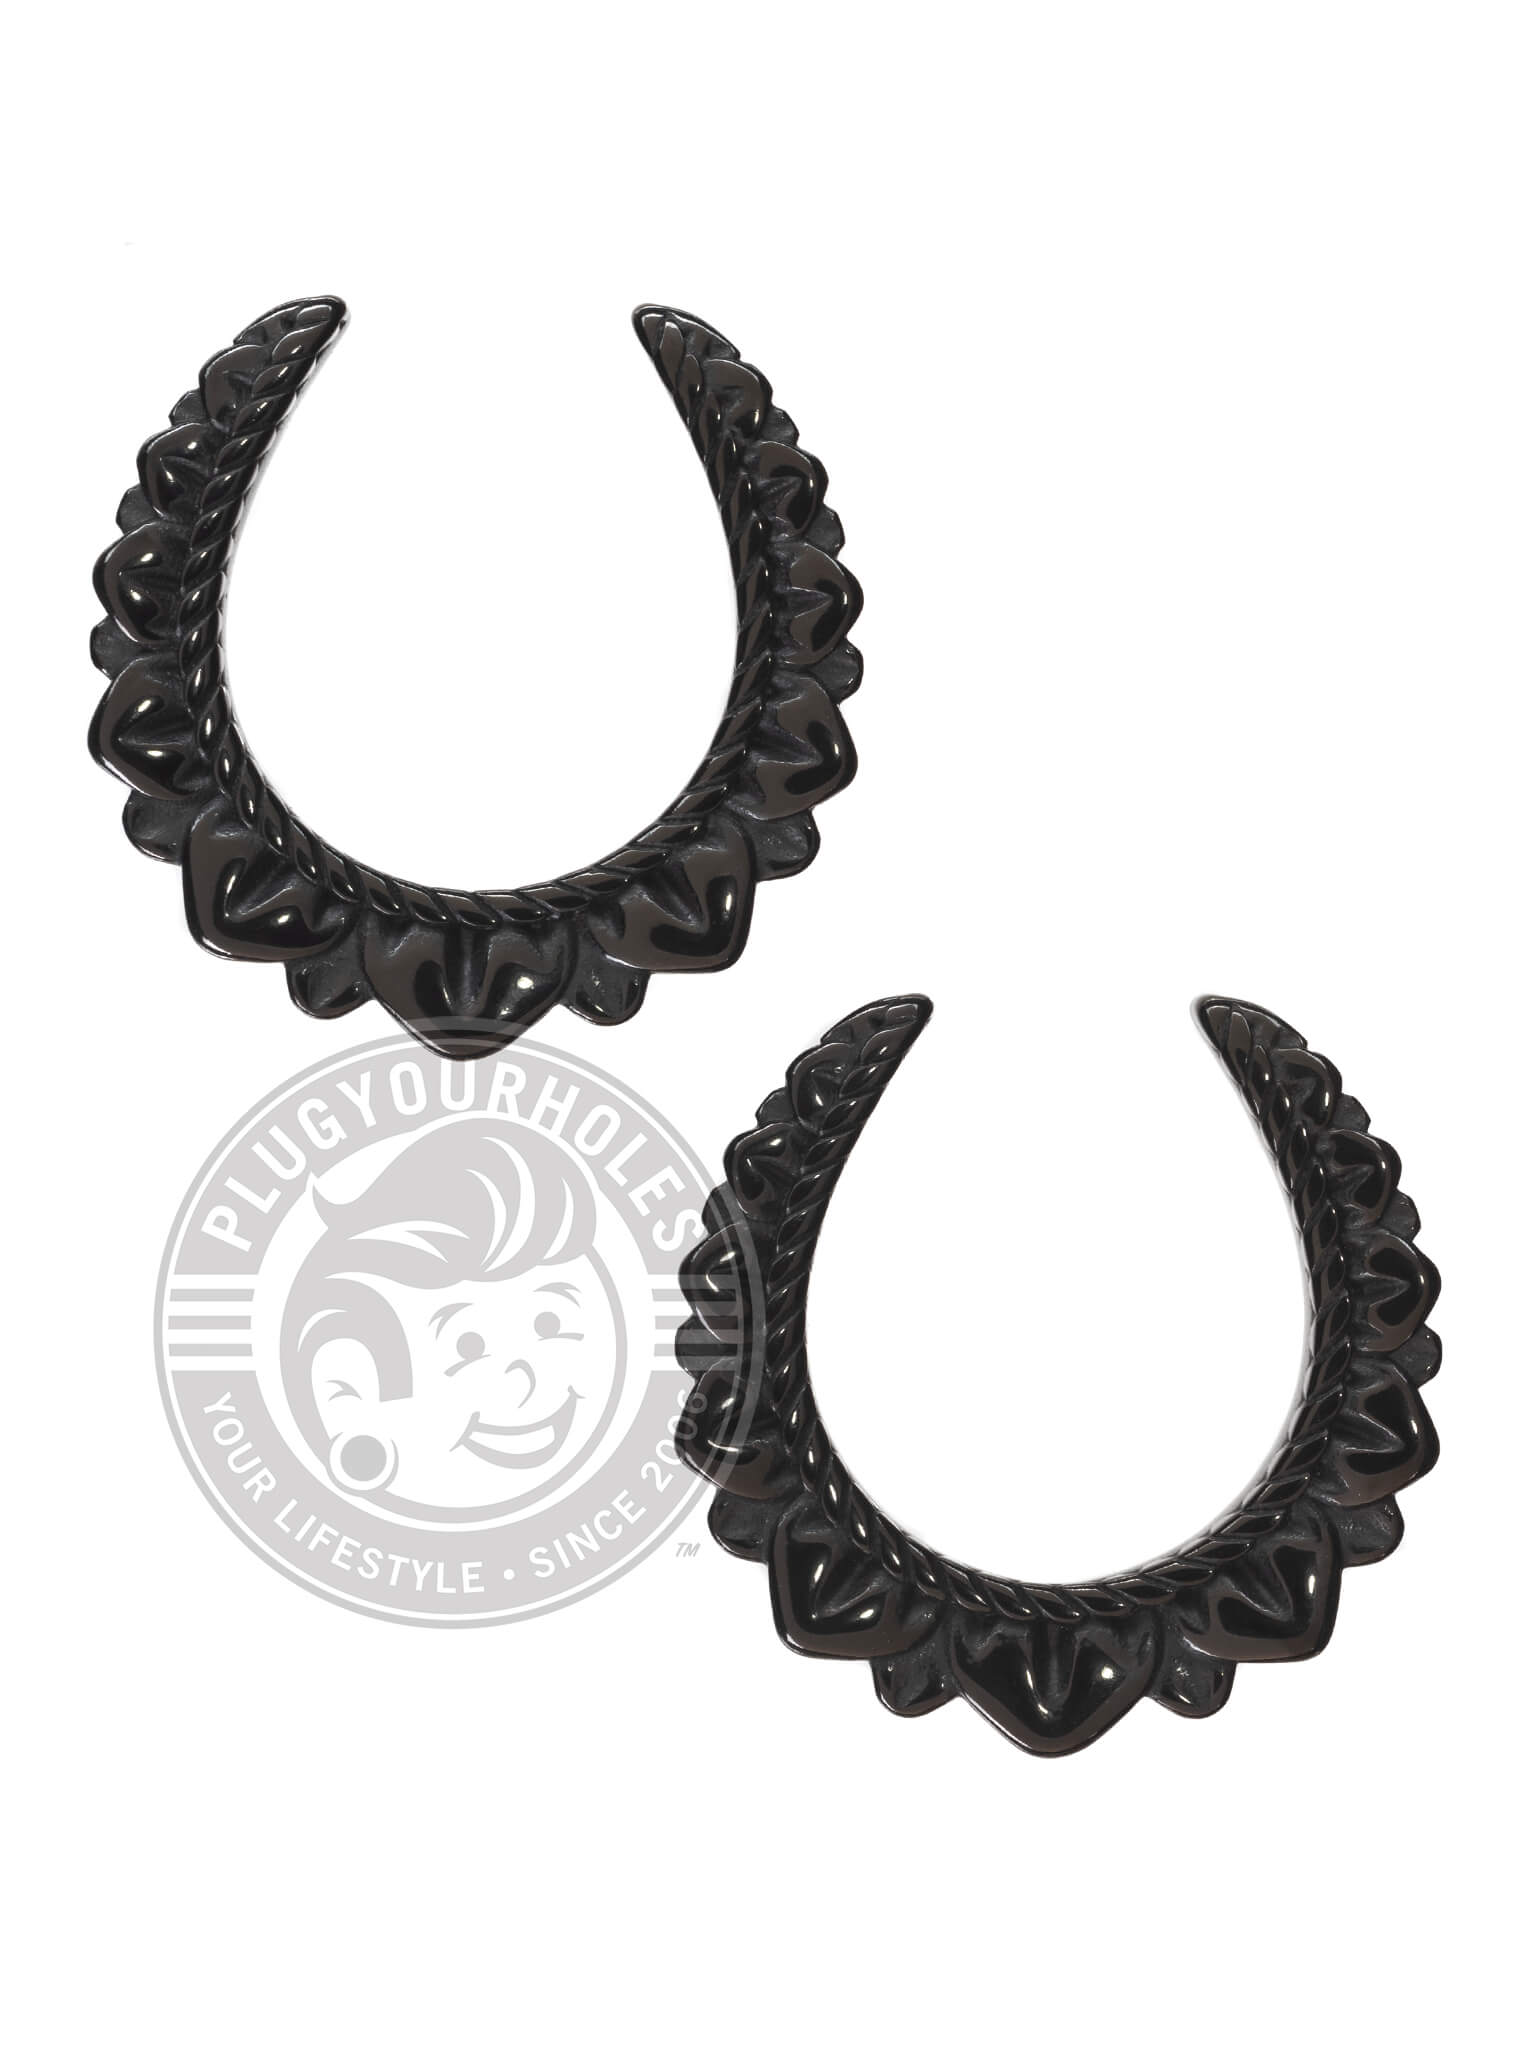 Black Floral Rope Steel Saddles